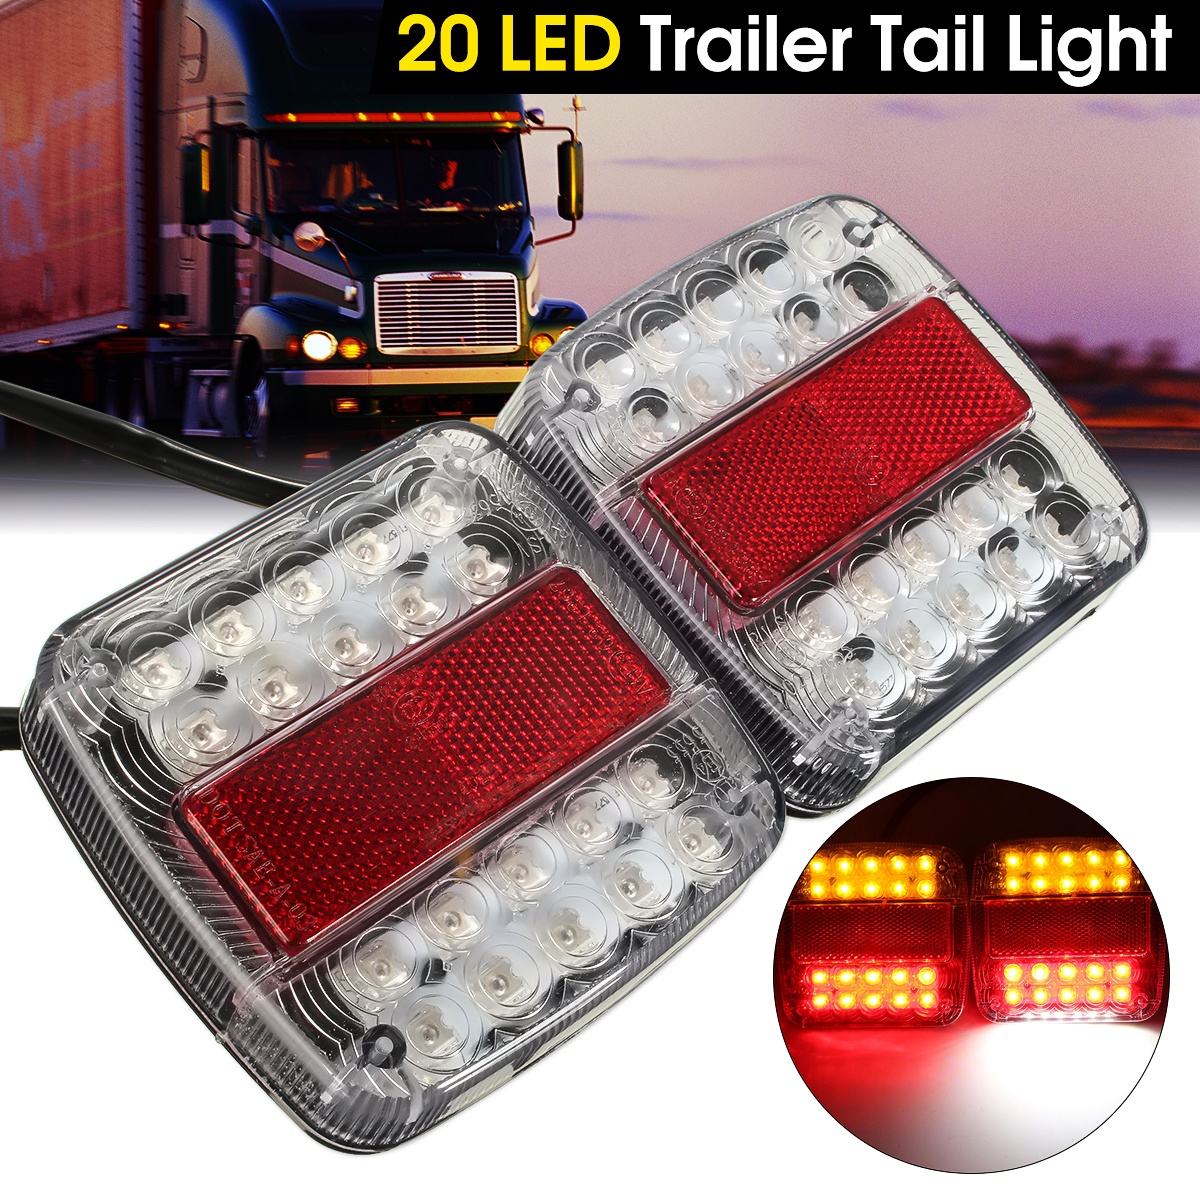 2x 12V 26 LED Taillight Turn Signal Light Rear Brake Stop Light Number License Plate Lamp For Car Truck Trailer E-Marked vehemo 12v 40 led truck car trailer rear tail light stop indicator turn signal lamp